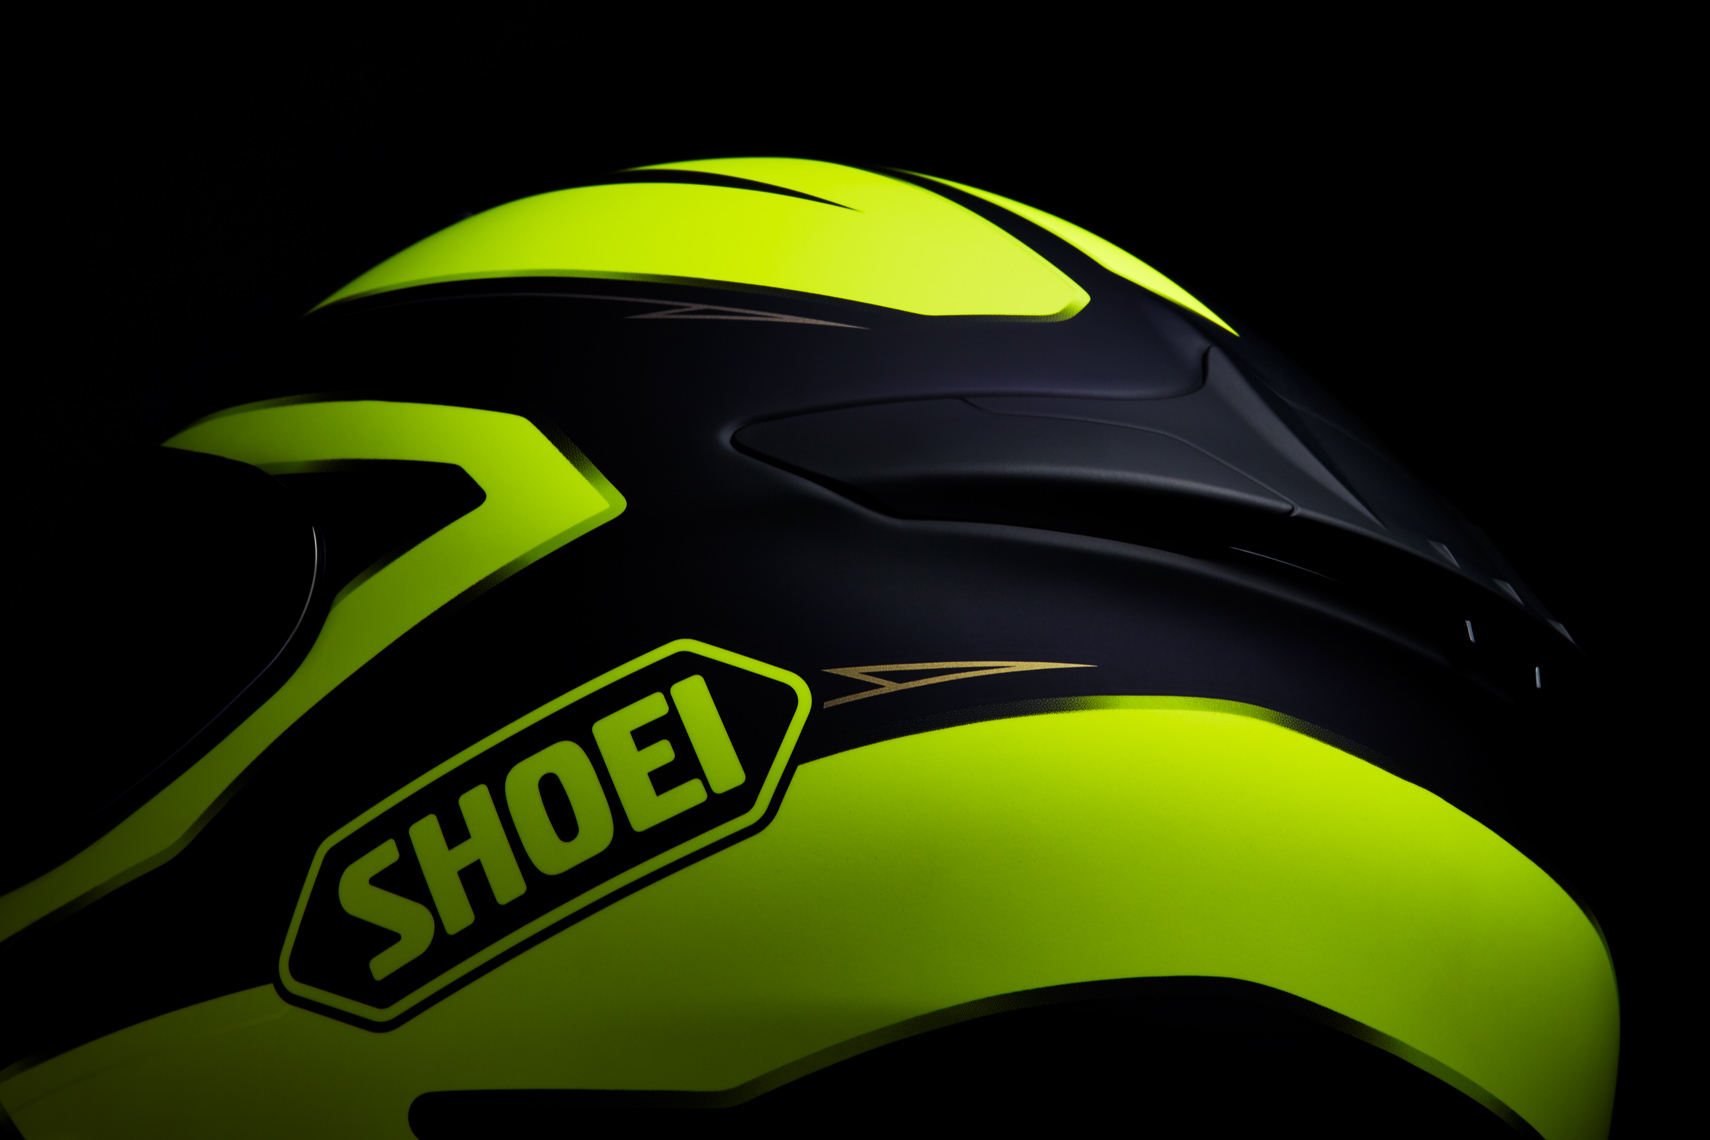 ShoeiHelmetLeft